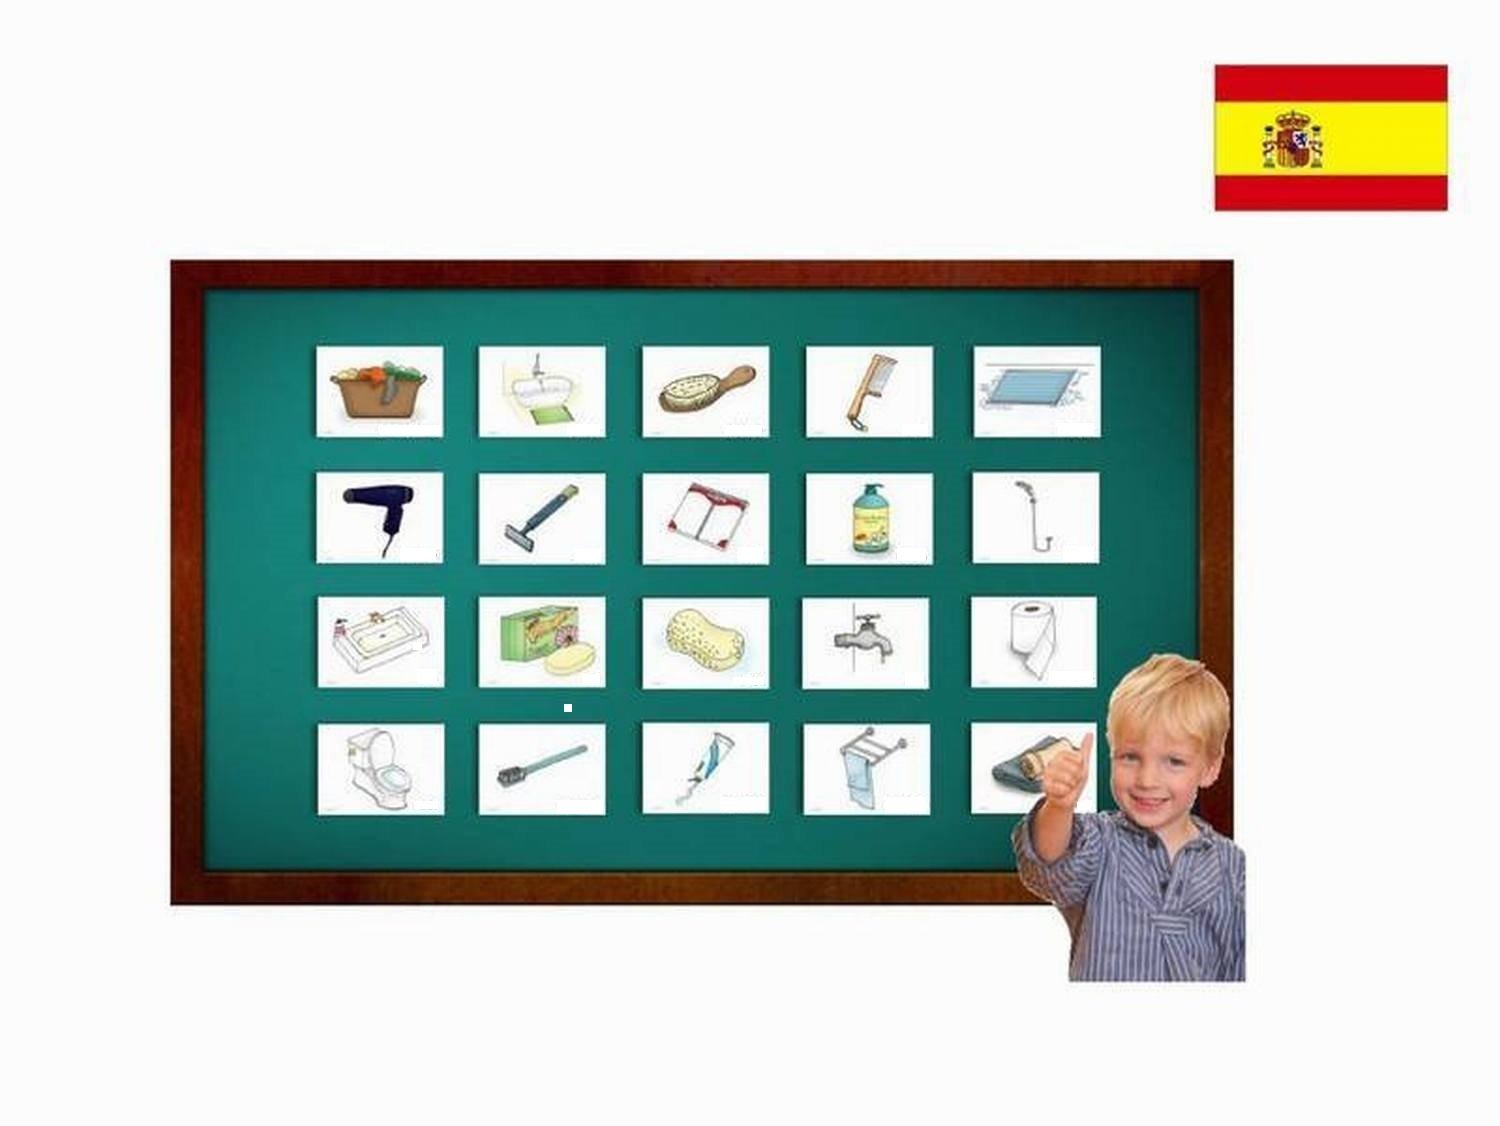 Amazon.com: Tarjetas de vocabulario - El baño - Spanish Bathroom and Body Care Flashcards - Vocabulary Picture Cards for Language Learning: Toys & Games